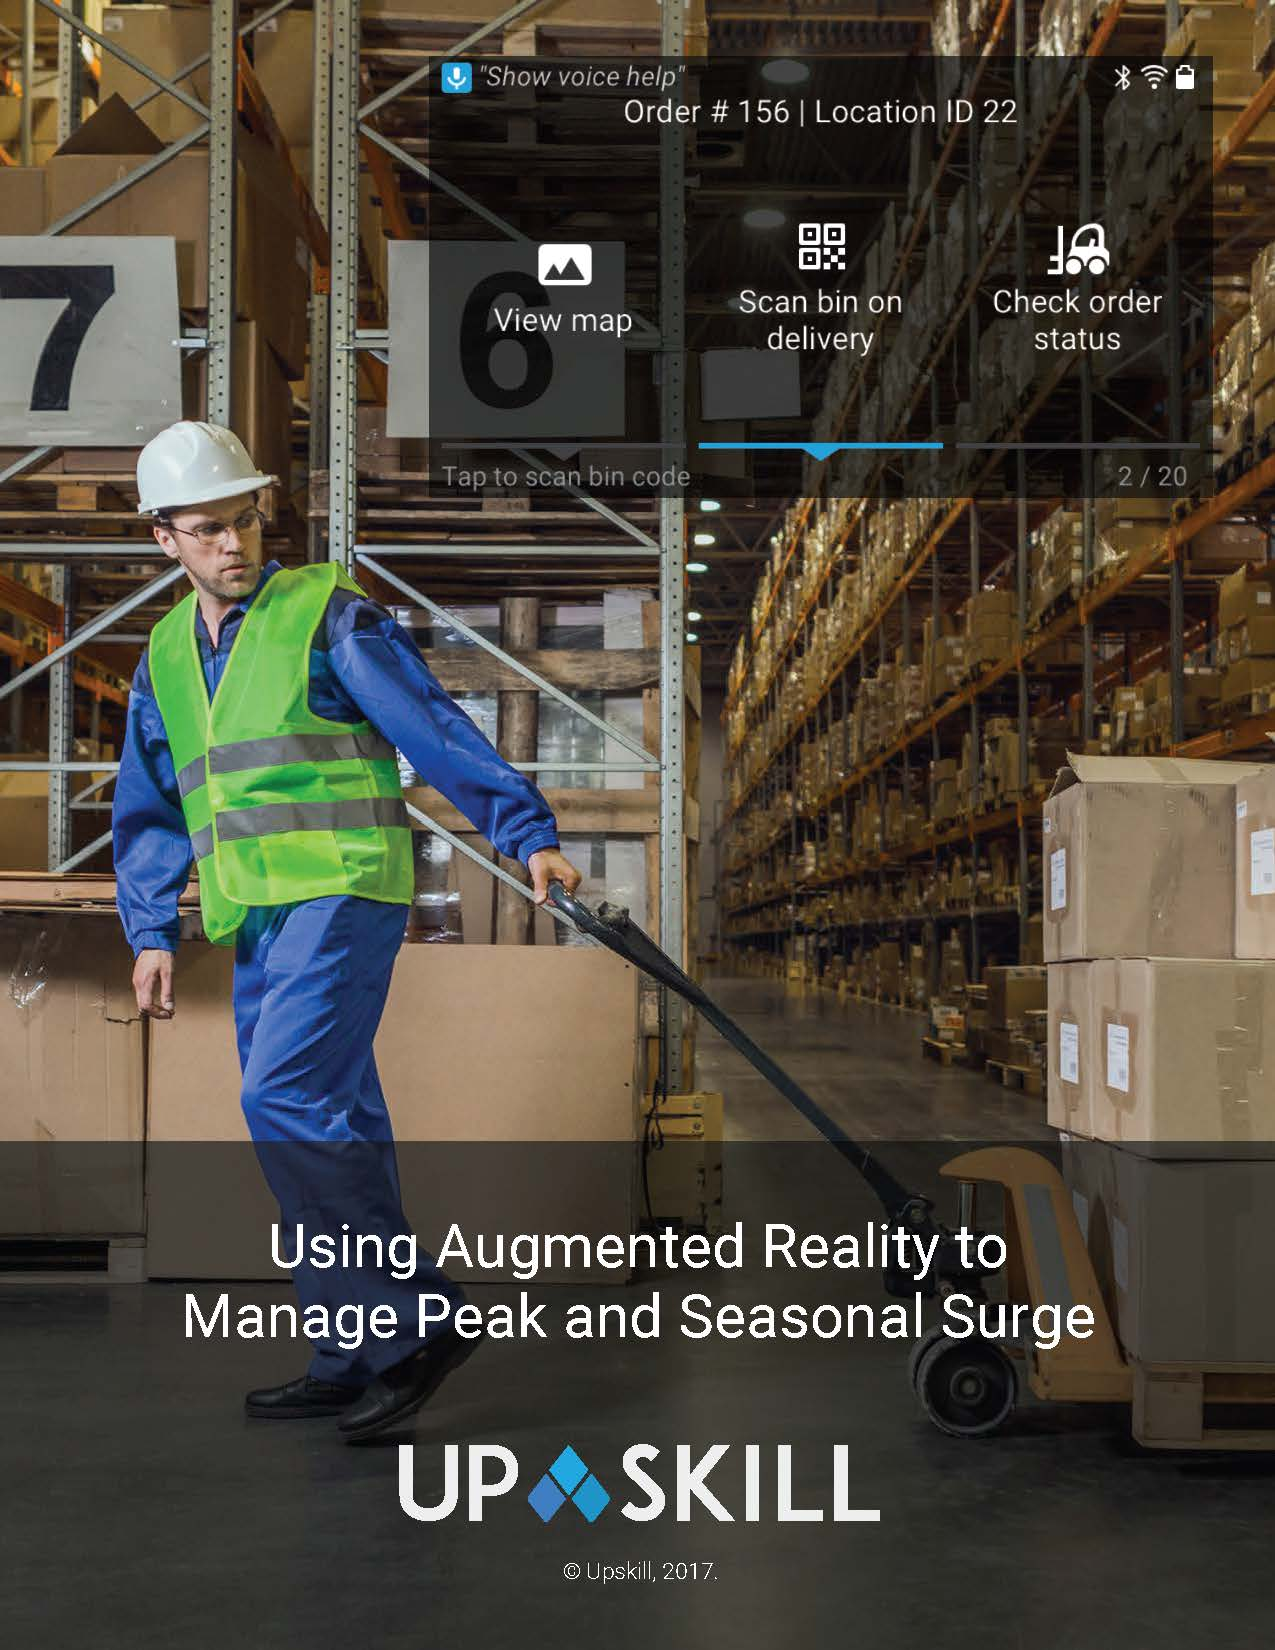 Using Augmented Reality to Manage Peak and Seasonal Surges in 3PL